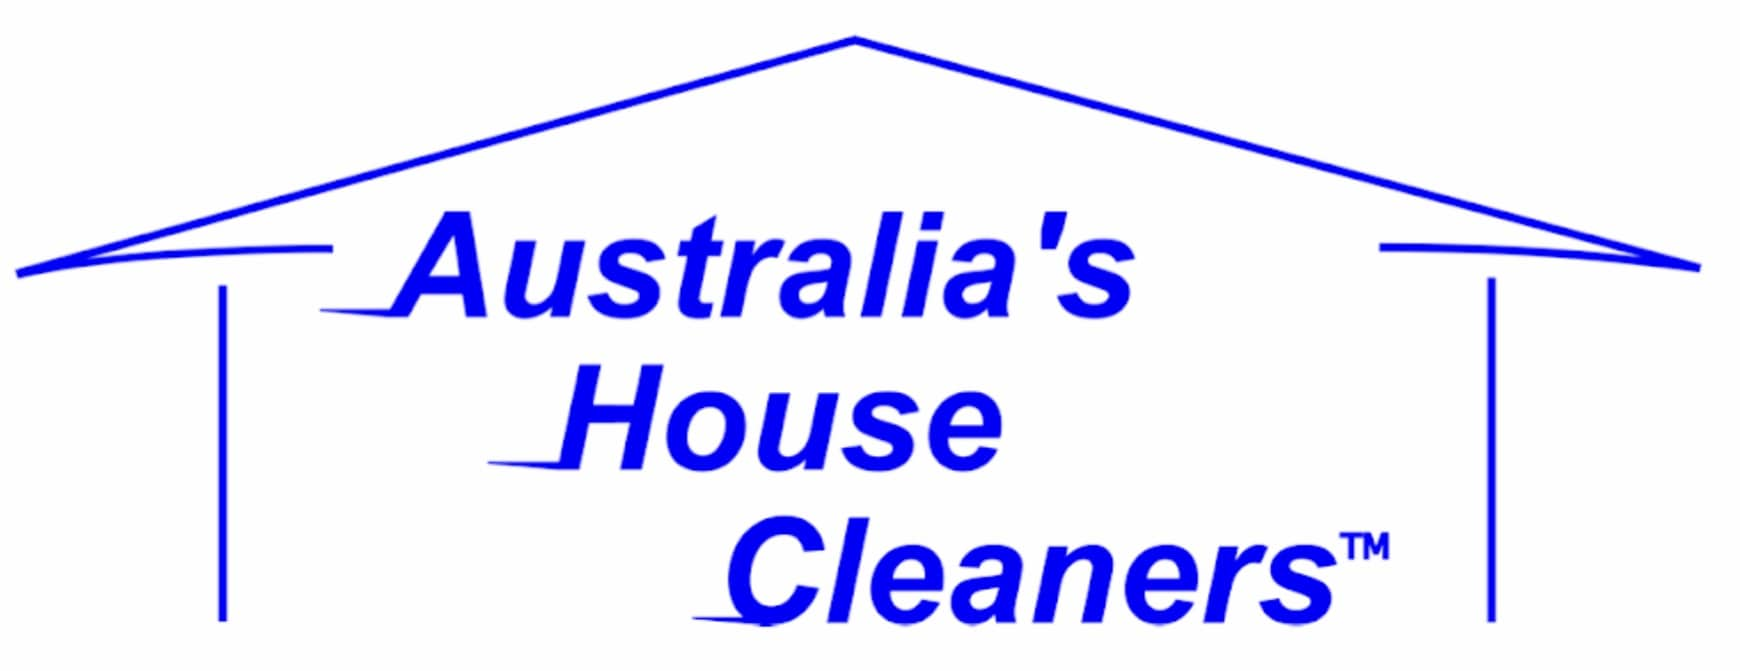 Australia's House Cleaners